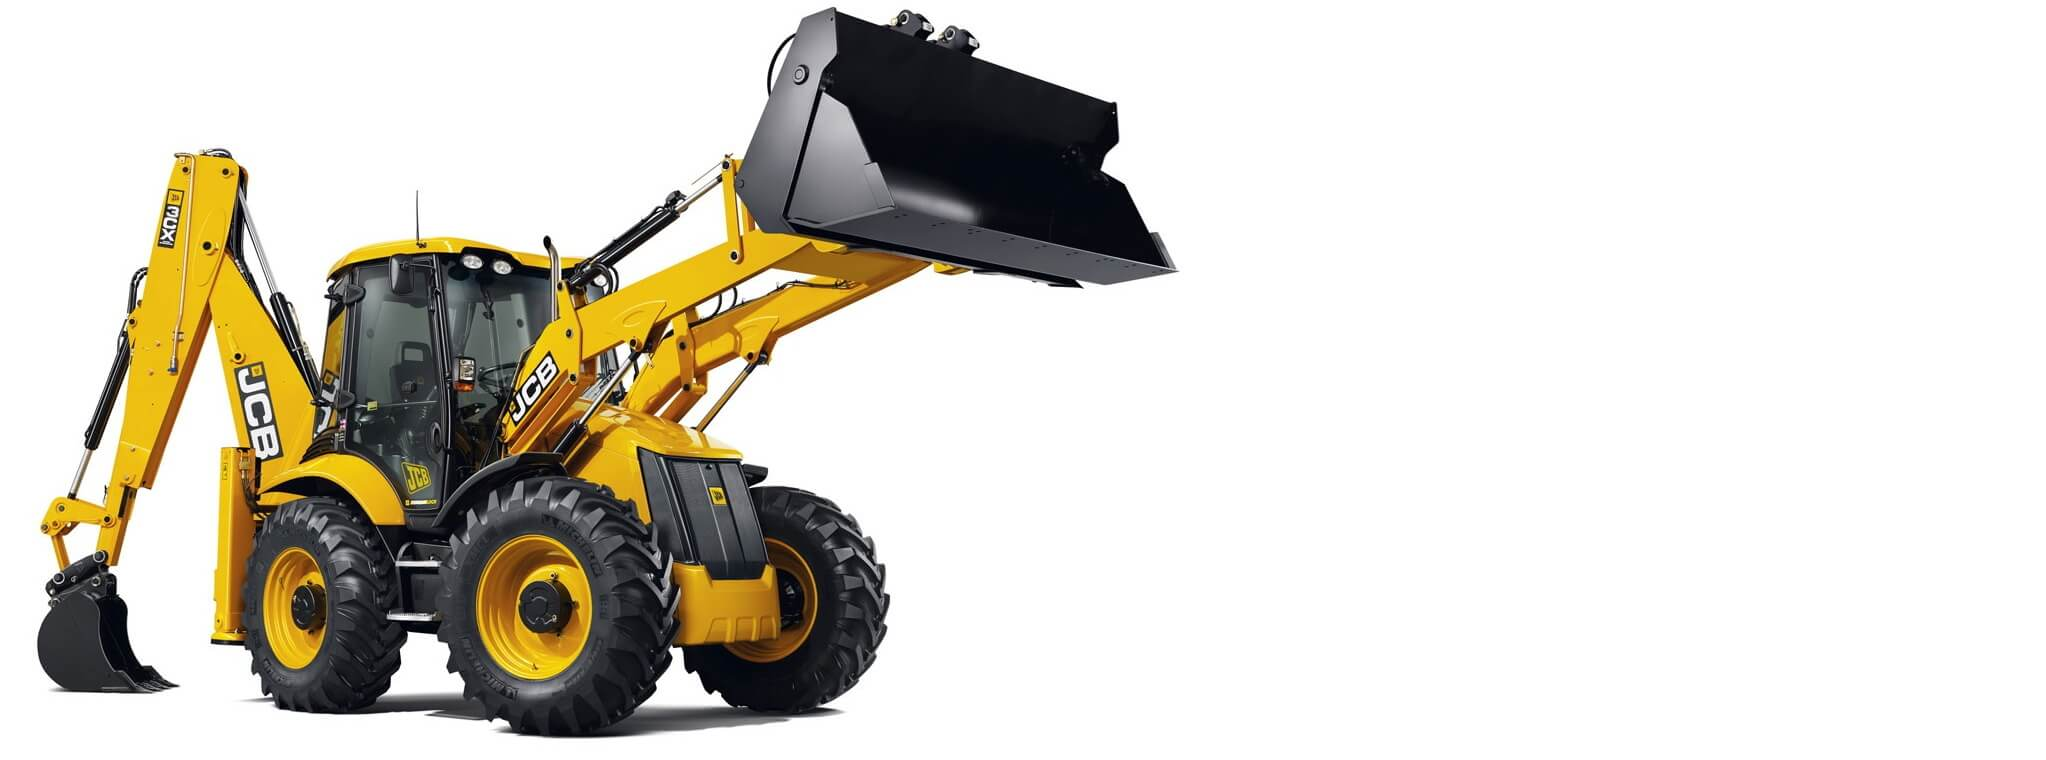 Погрузчик JCB 3CX Super